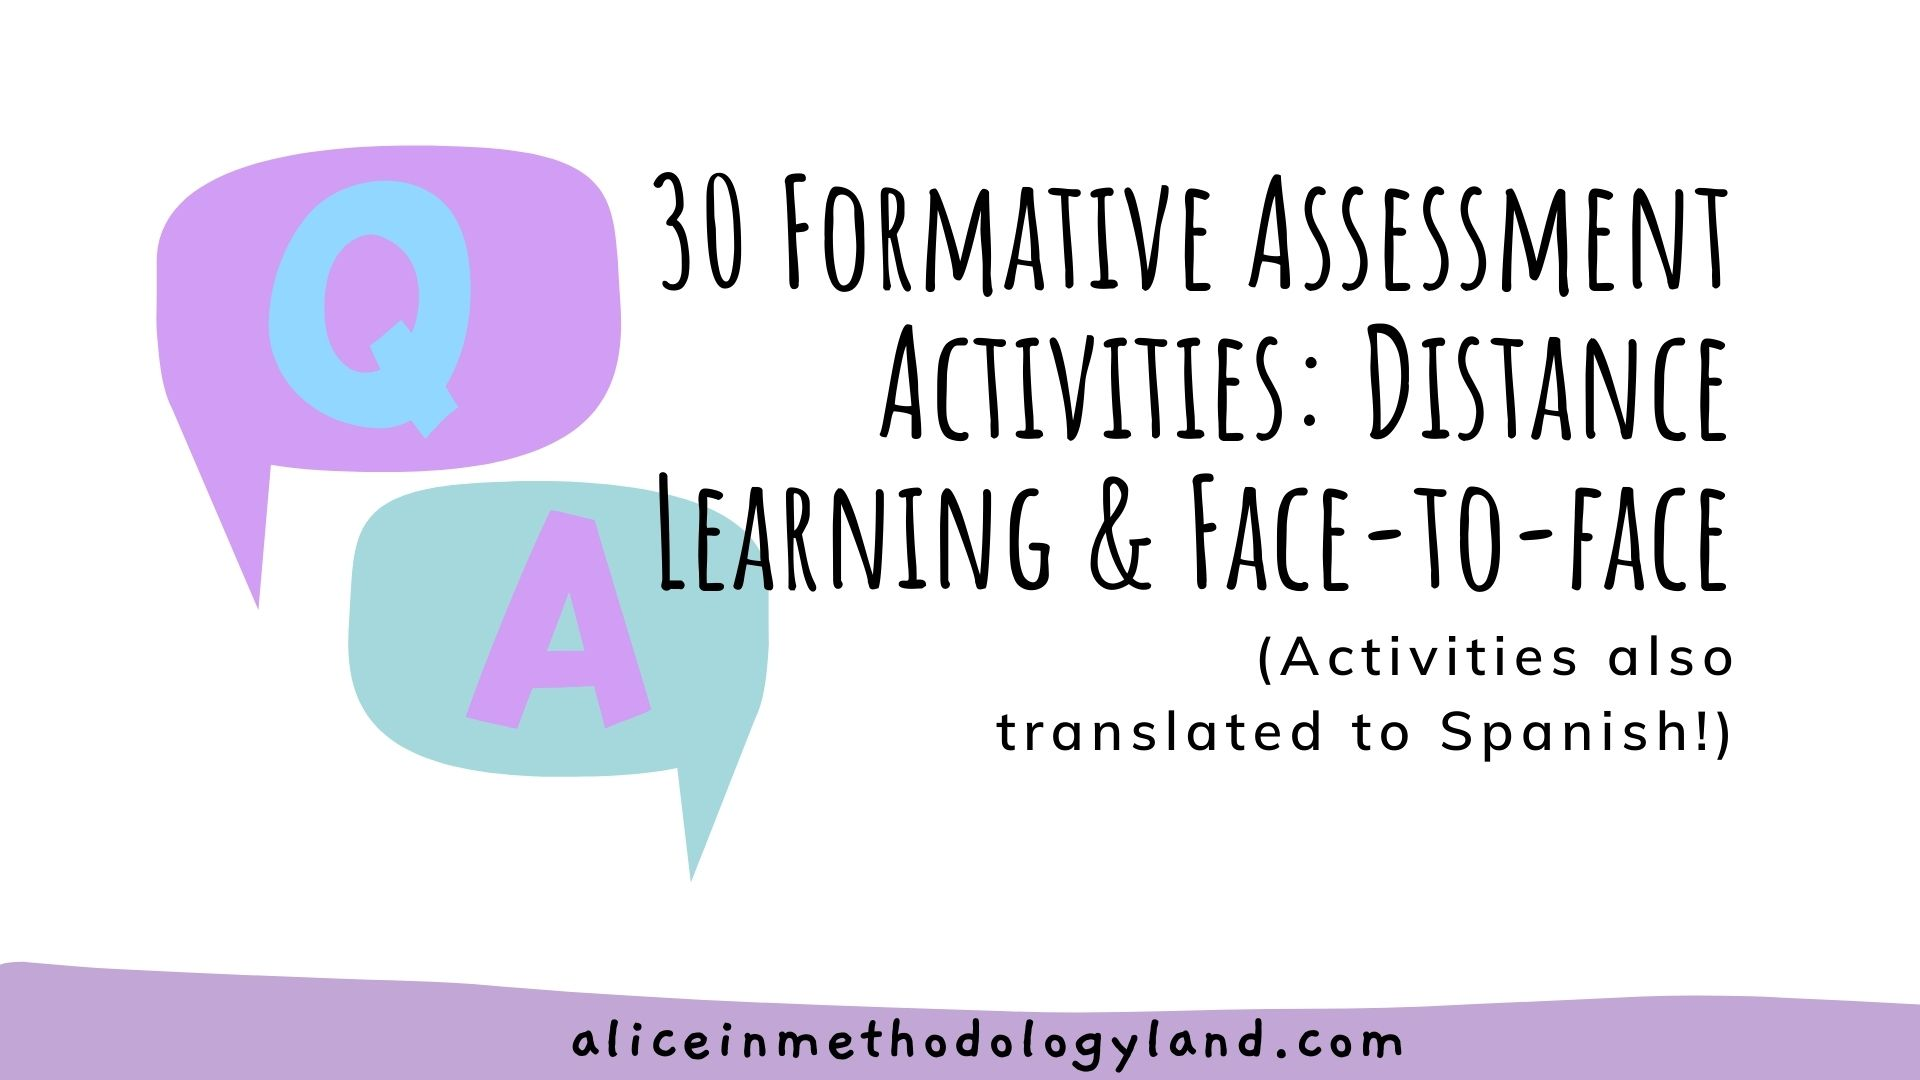 30 Formative Assessment Activities: Distance & Face-to-face Learning